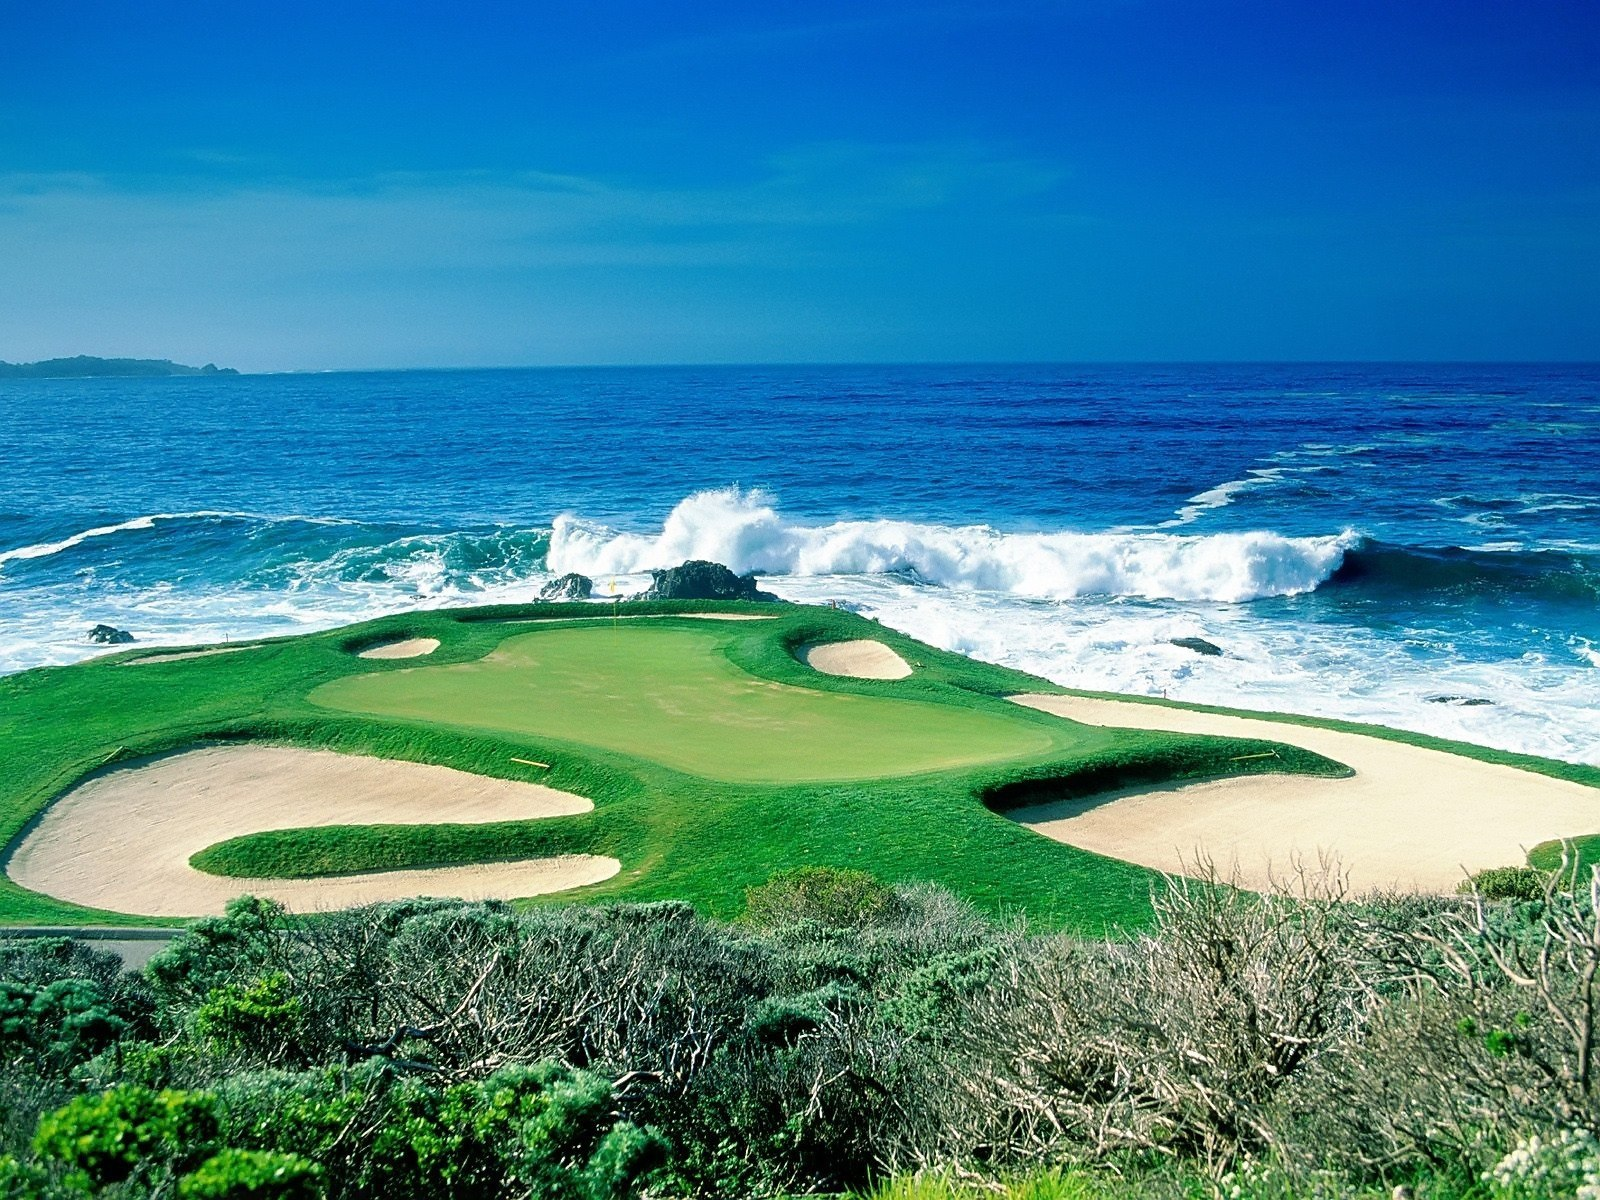 nicest golf courses in the world